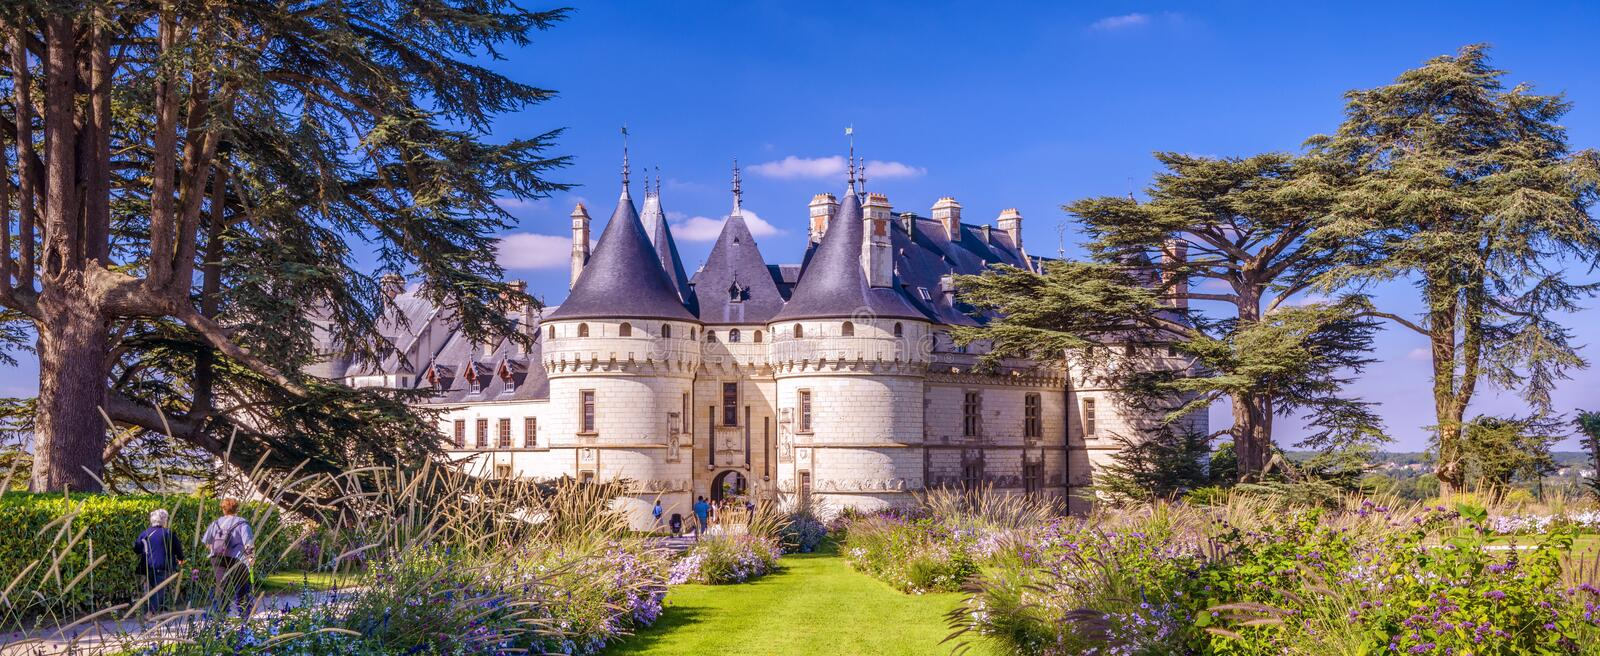 Castle or chateau de Chaumont-sur-Loire, France. This old castle is a landmark of Loire Valley. Panoramic scenic view of the French castle in summer stock photos